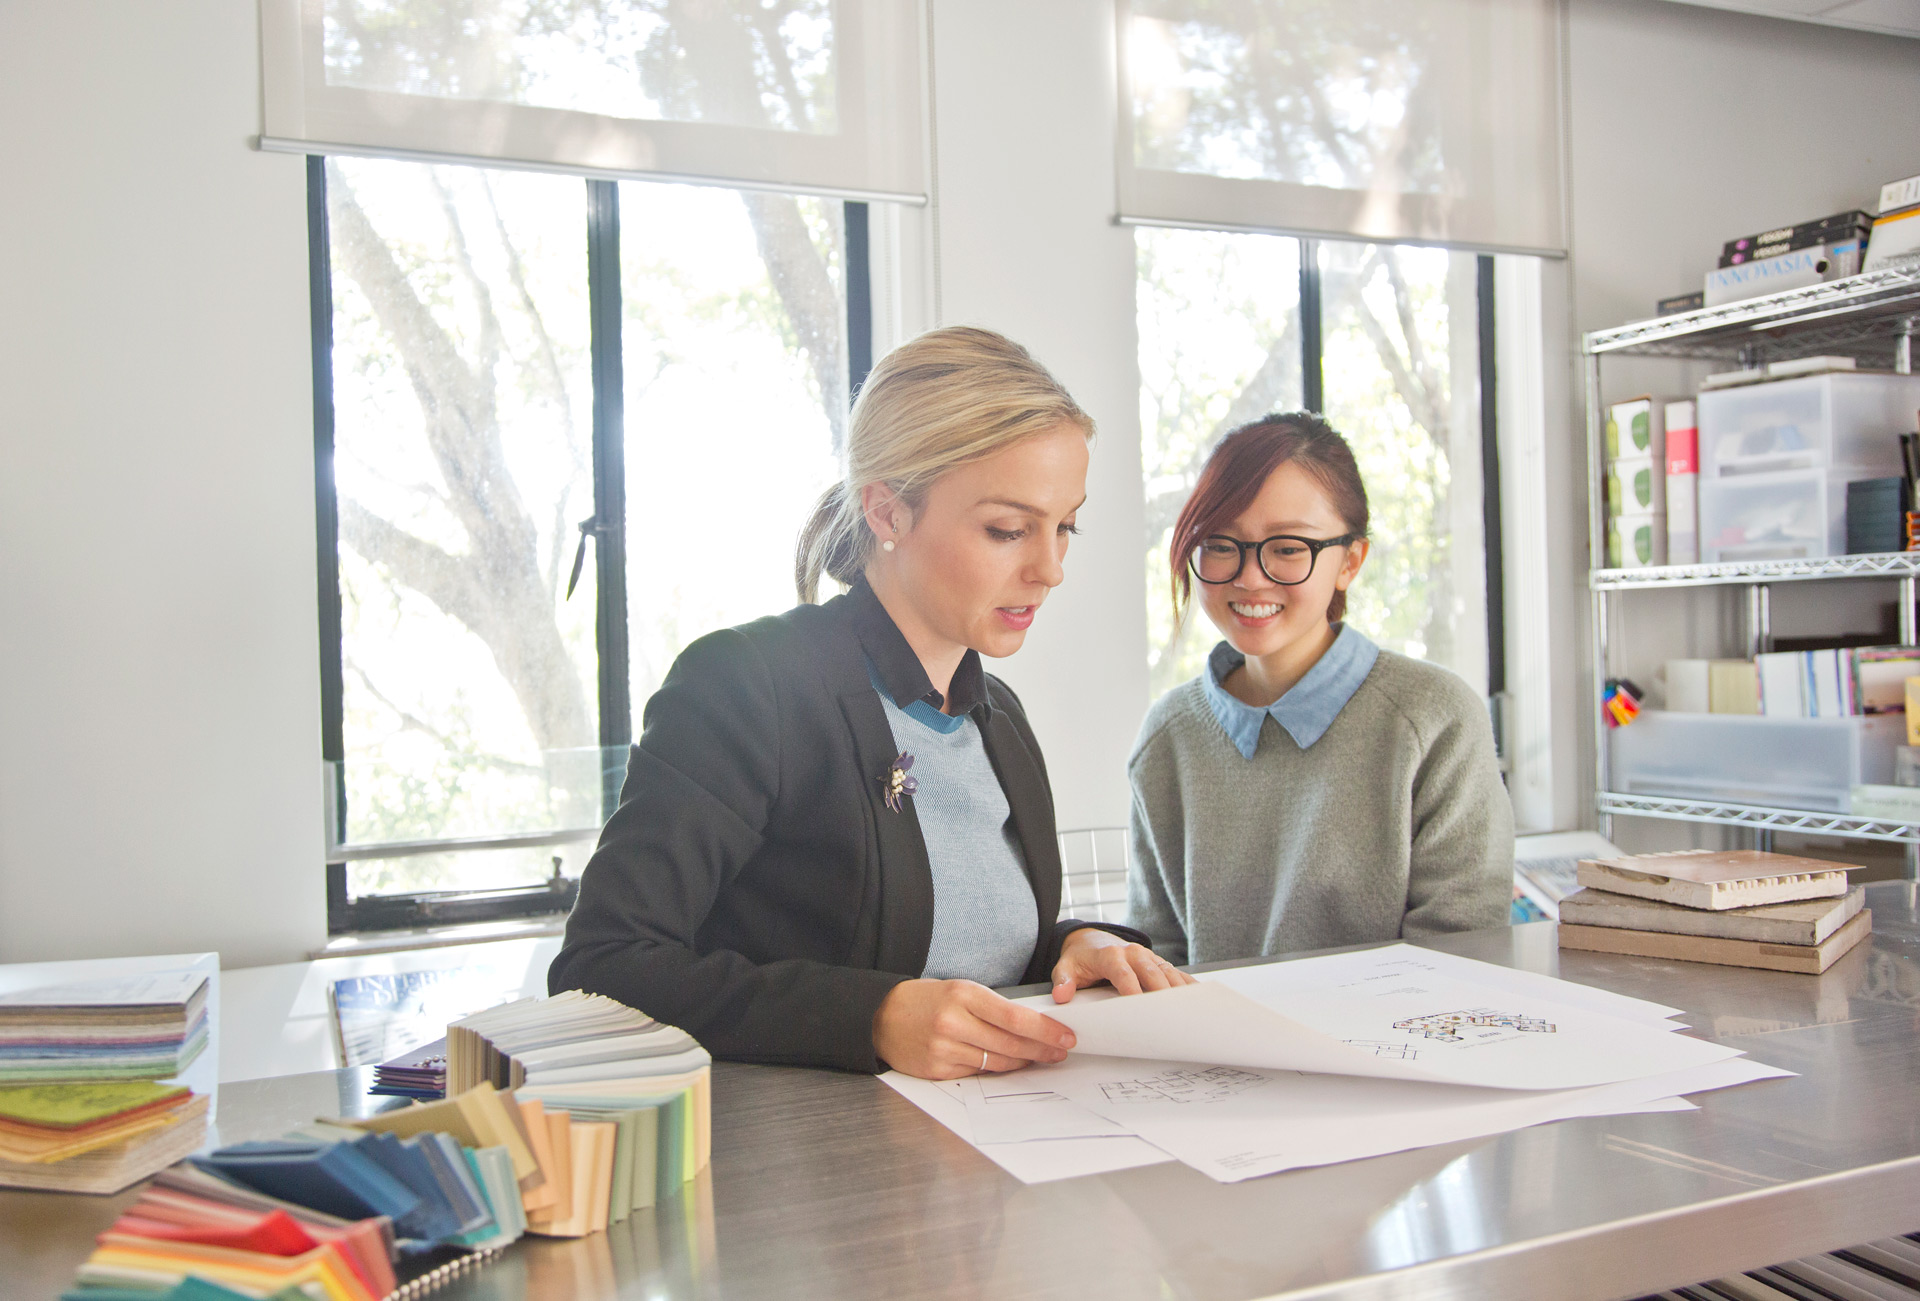 Apply for scad current student scholarships at workshop - Scholarships for interior design students ...